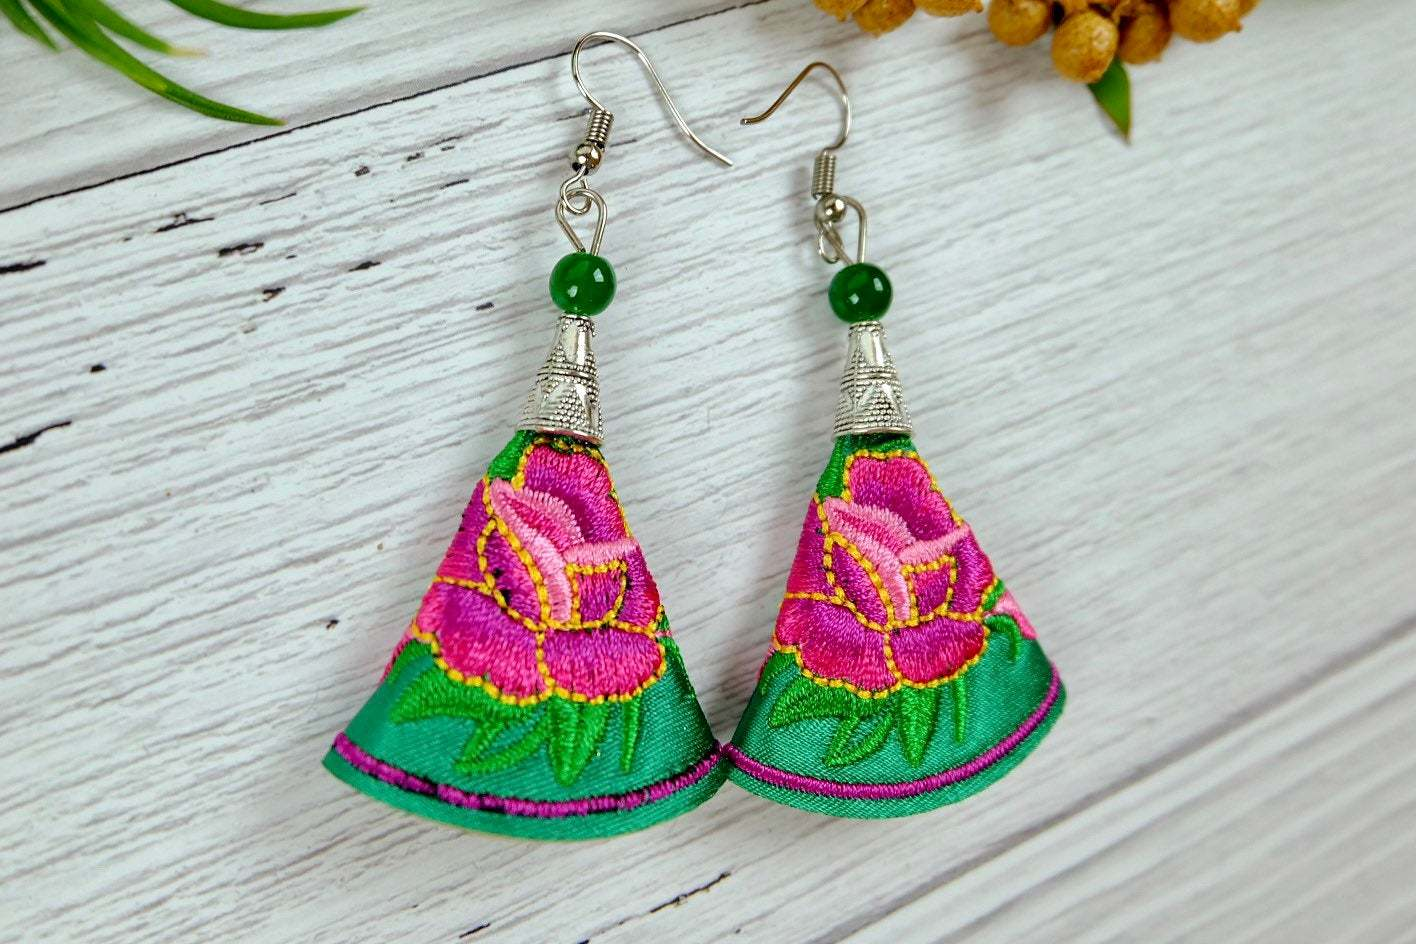 Floral Embroidery Dangle Earrings, Colorful Fabric Handmade Jewelry image 2